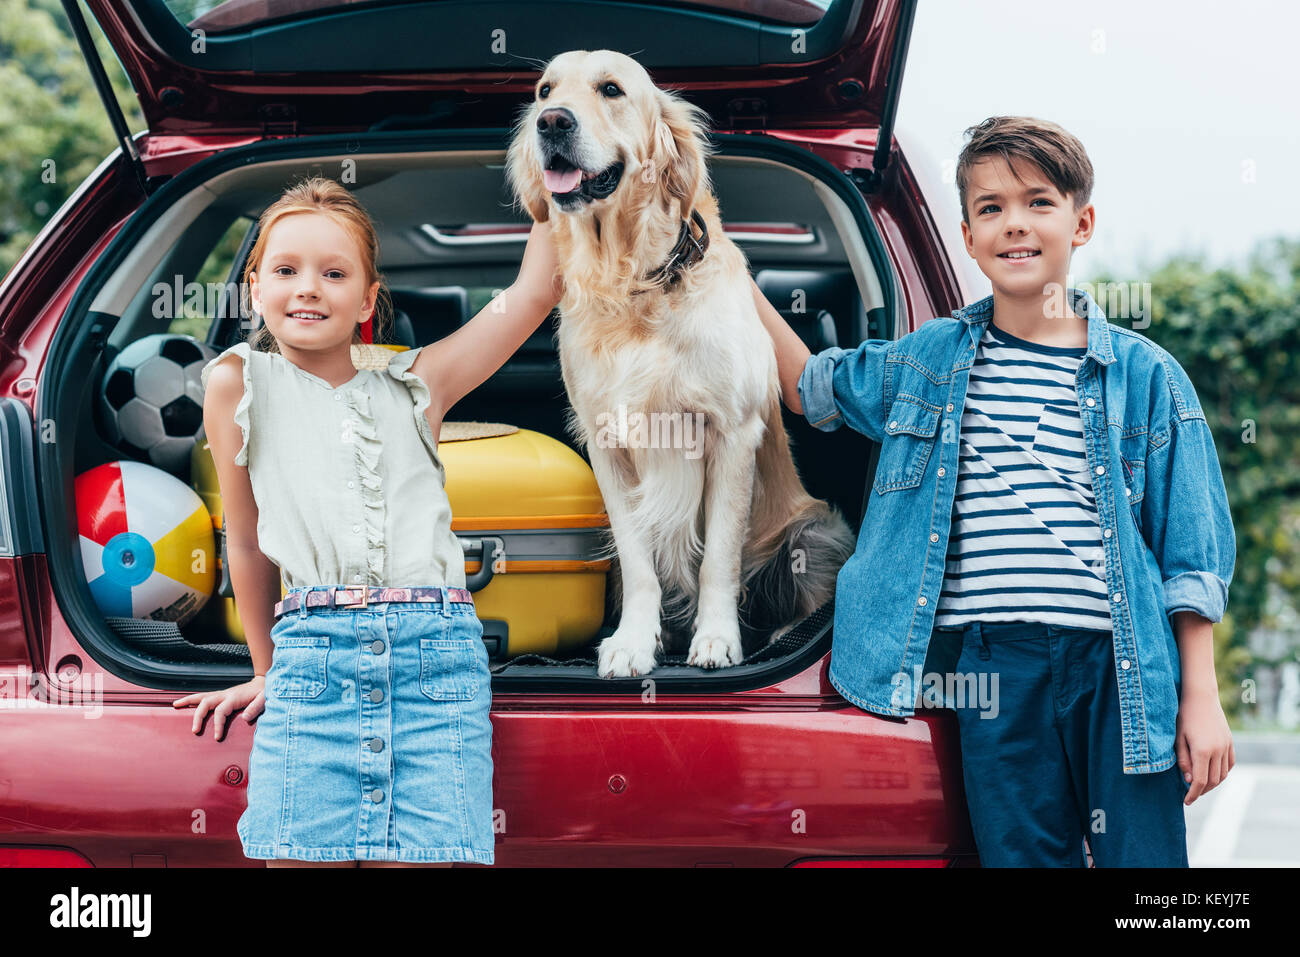 kids with dog in car trunk - Stock Image